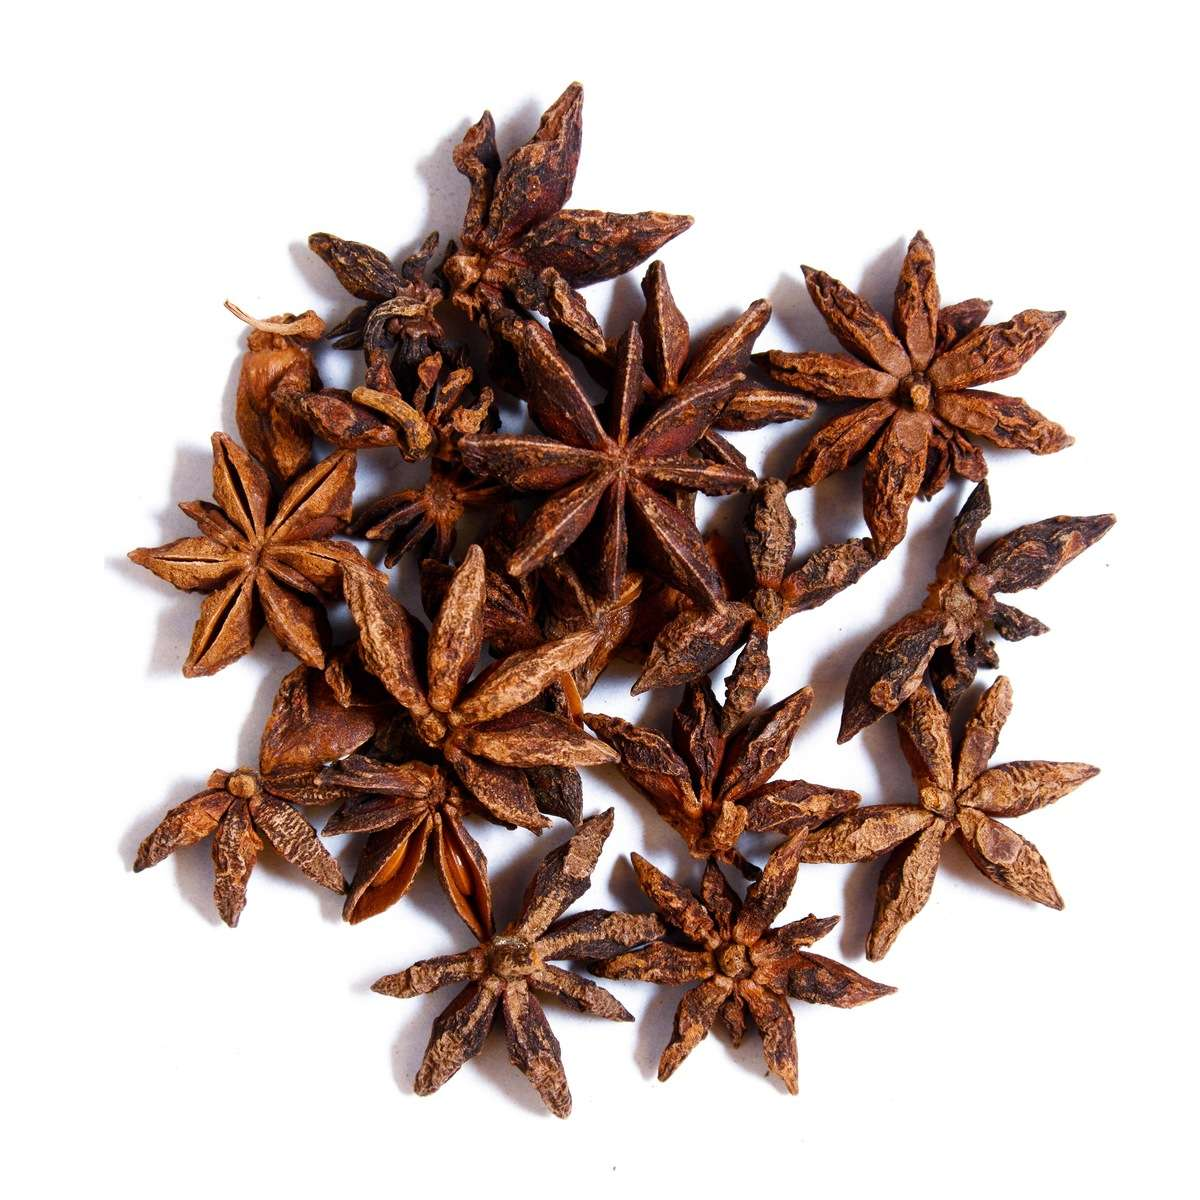 1200x1200 > Star Anise Wallpapers